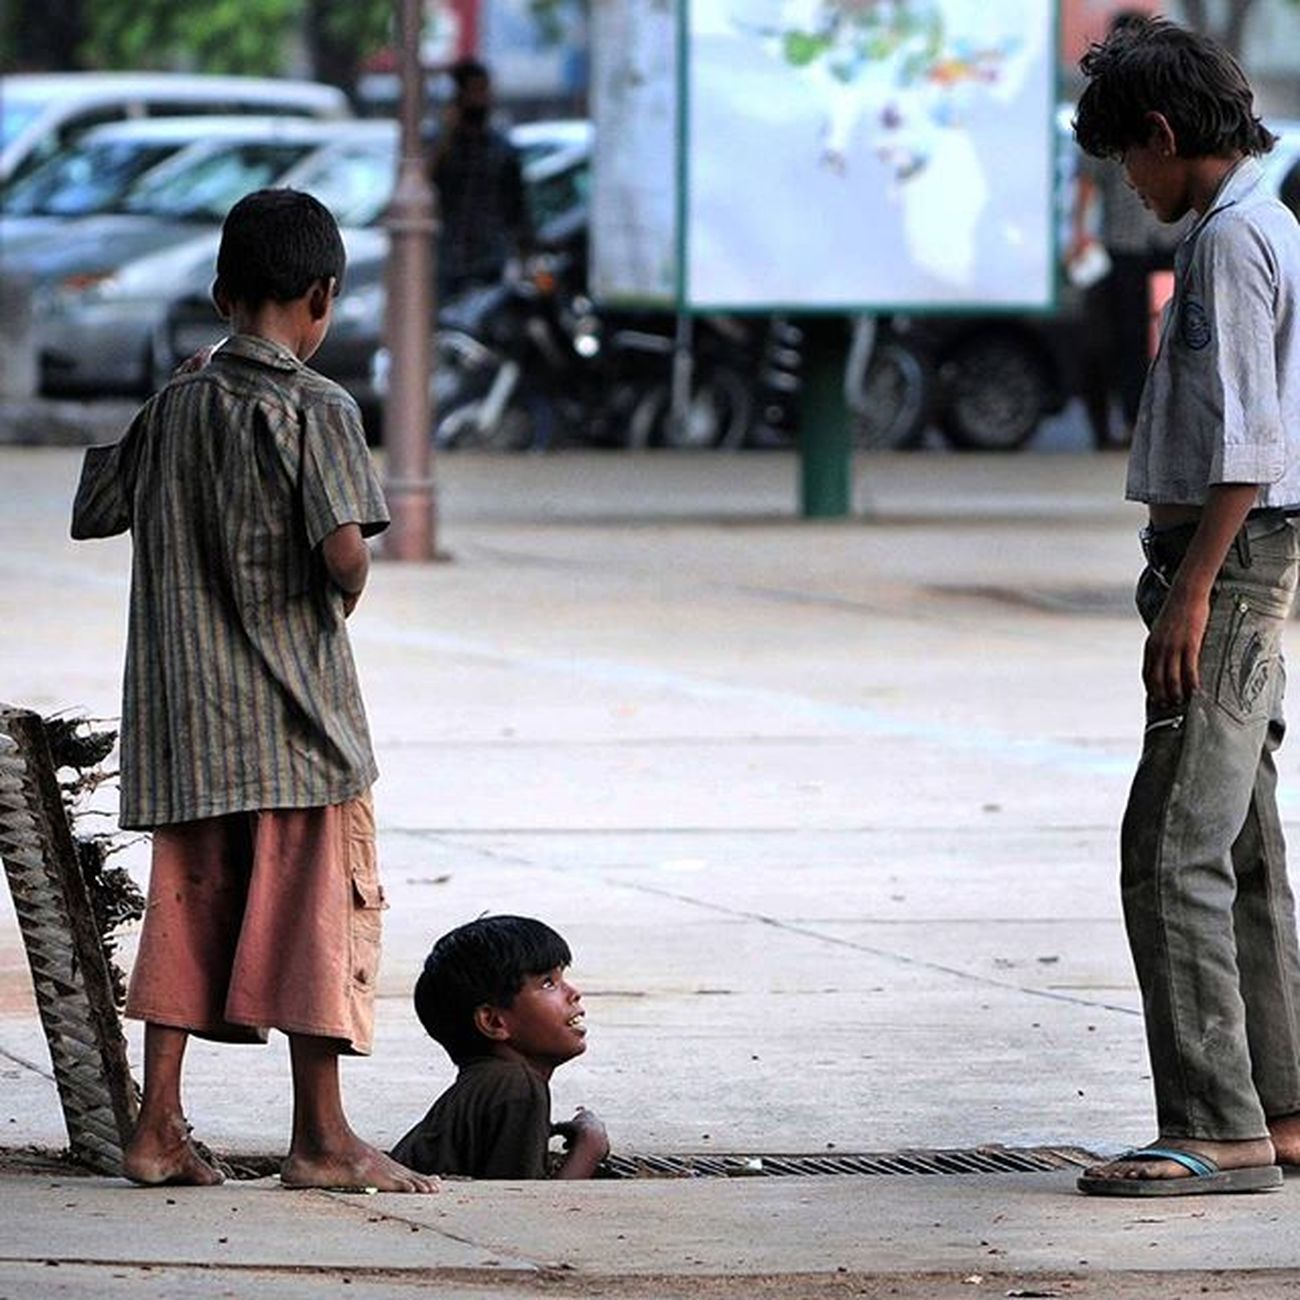 Hindustan_times Road side romeos beggers InstawithHT Dailypic Dailylook Dailylife Beggars Kids Lifeisgood Chandigarh India Roadsideattraction Roadsideromeo Savethechildren  Begging Poorindia Raviclick